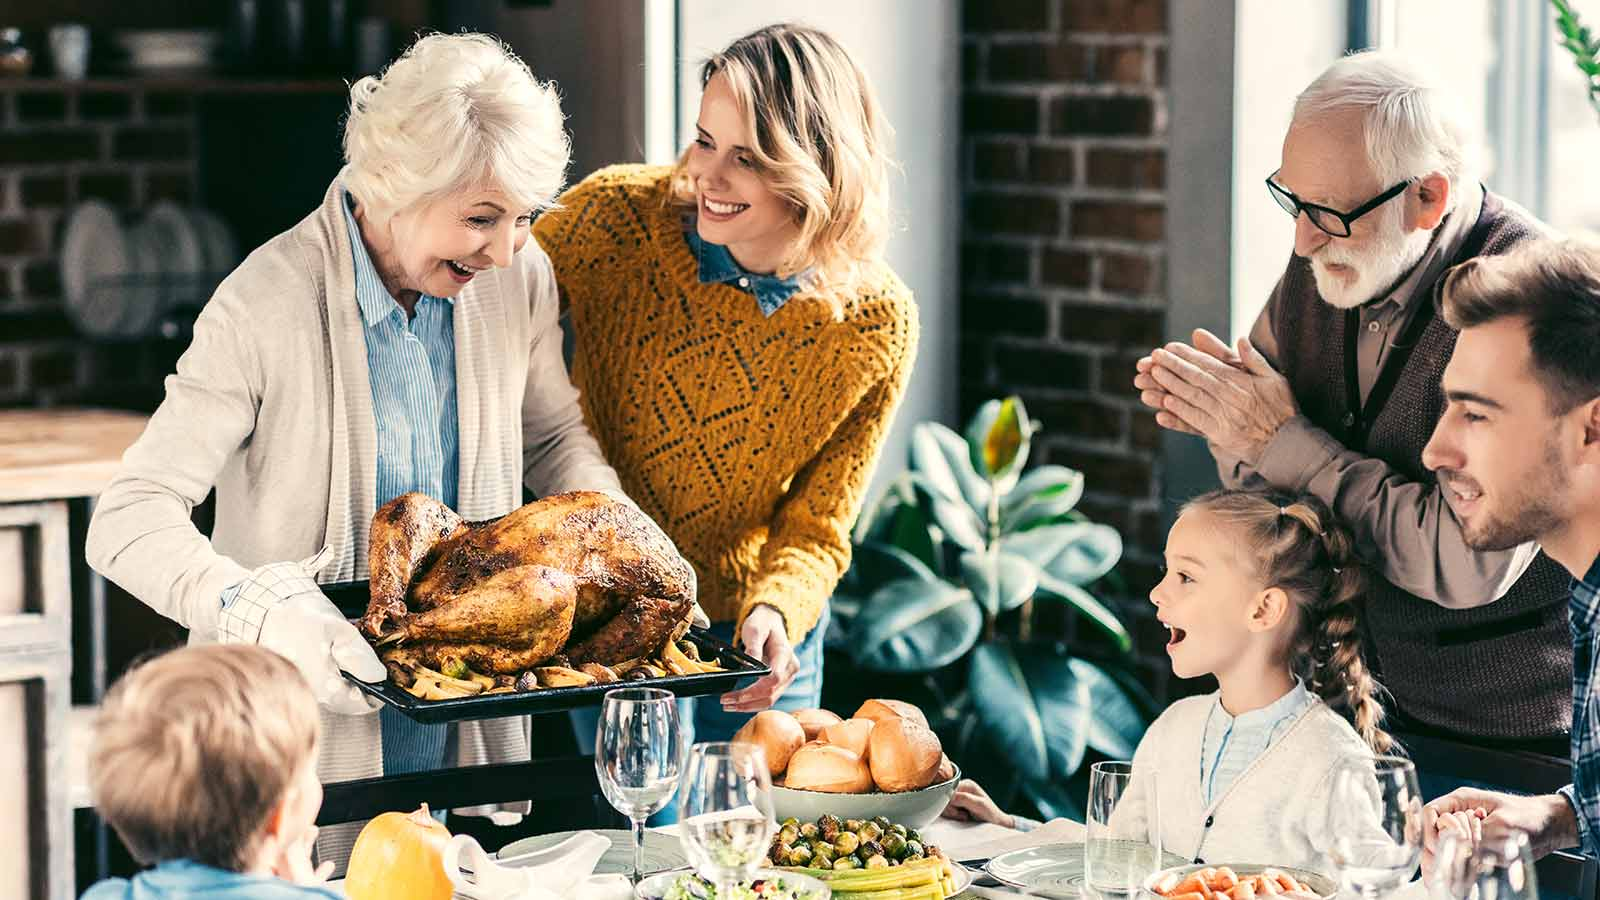 family gathered around a holiday table with a grandmotherly figure bringing a roast turkey to dine on